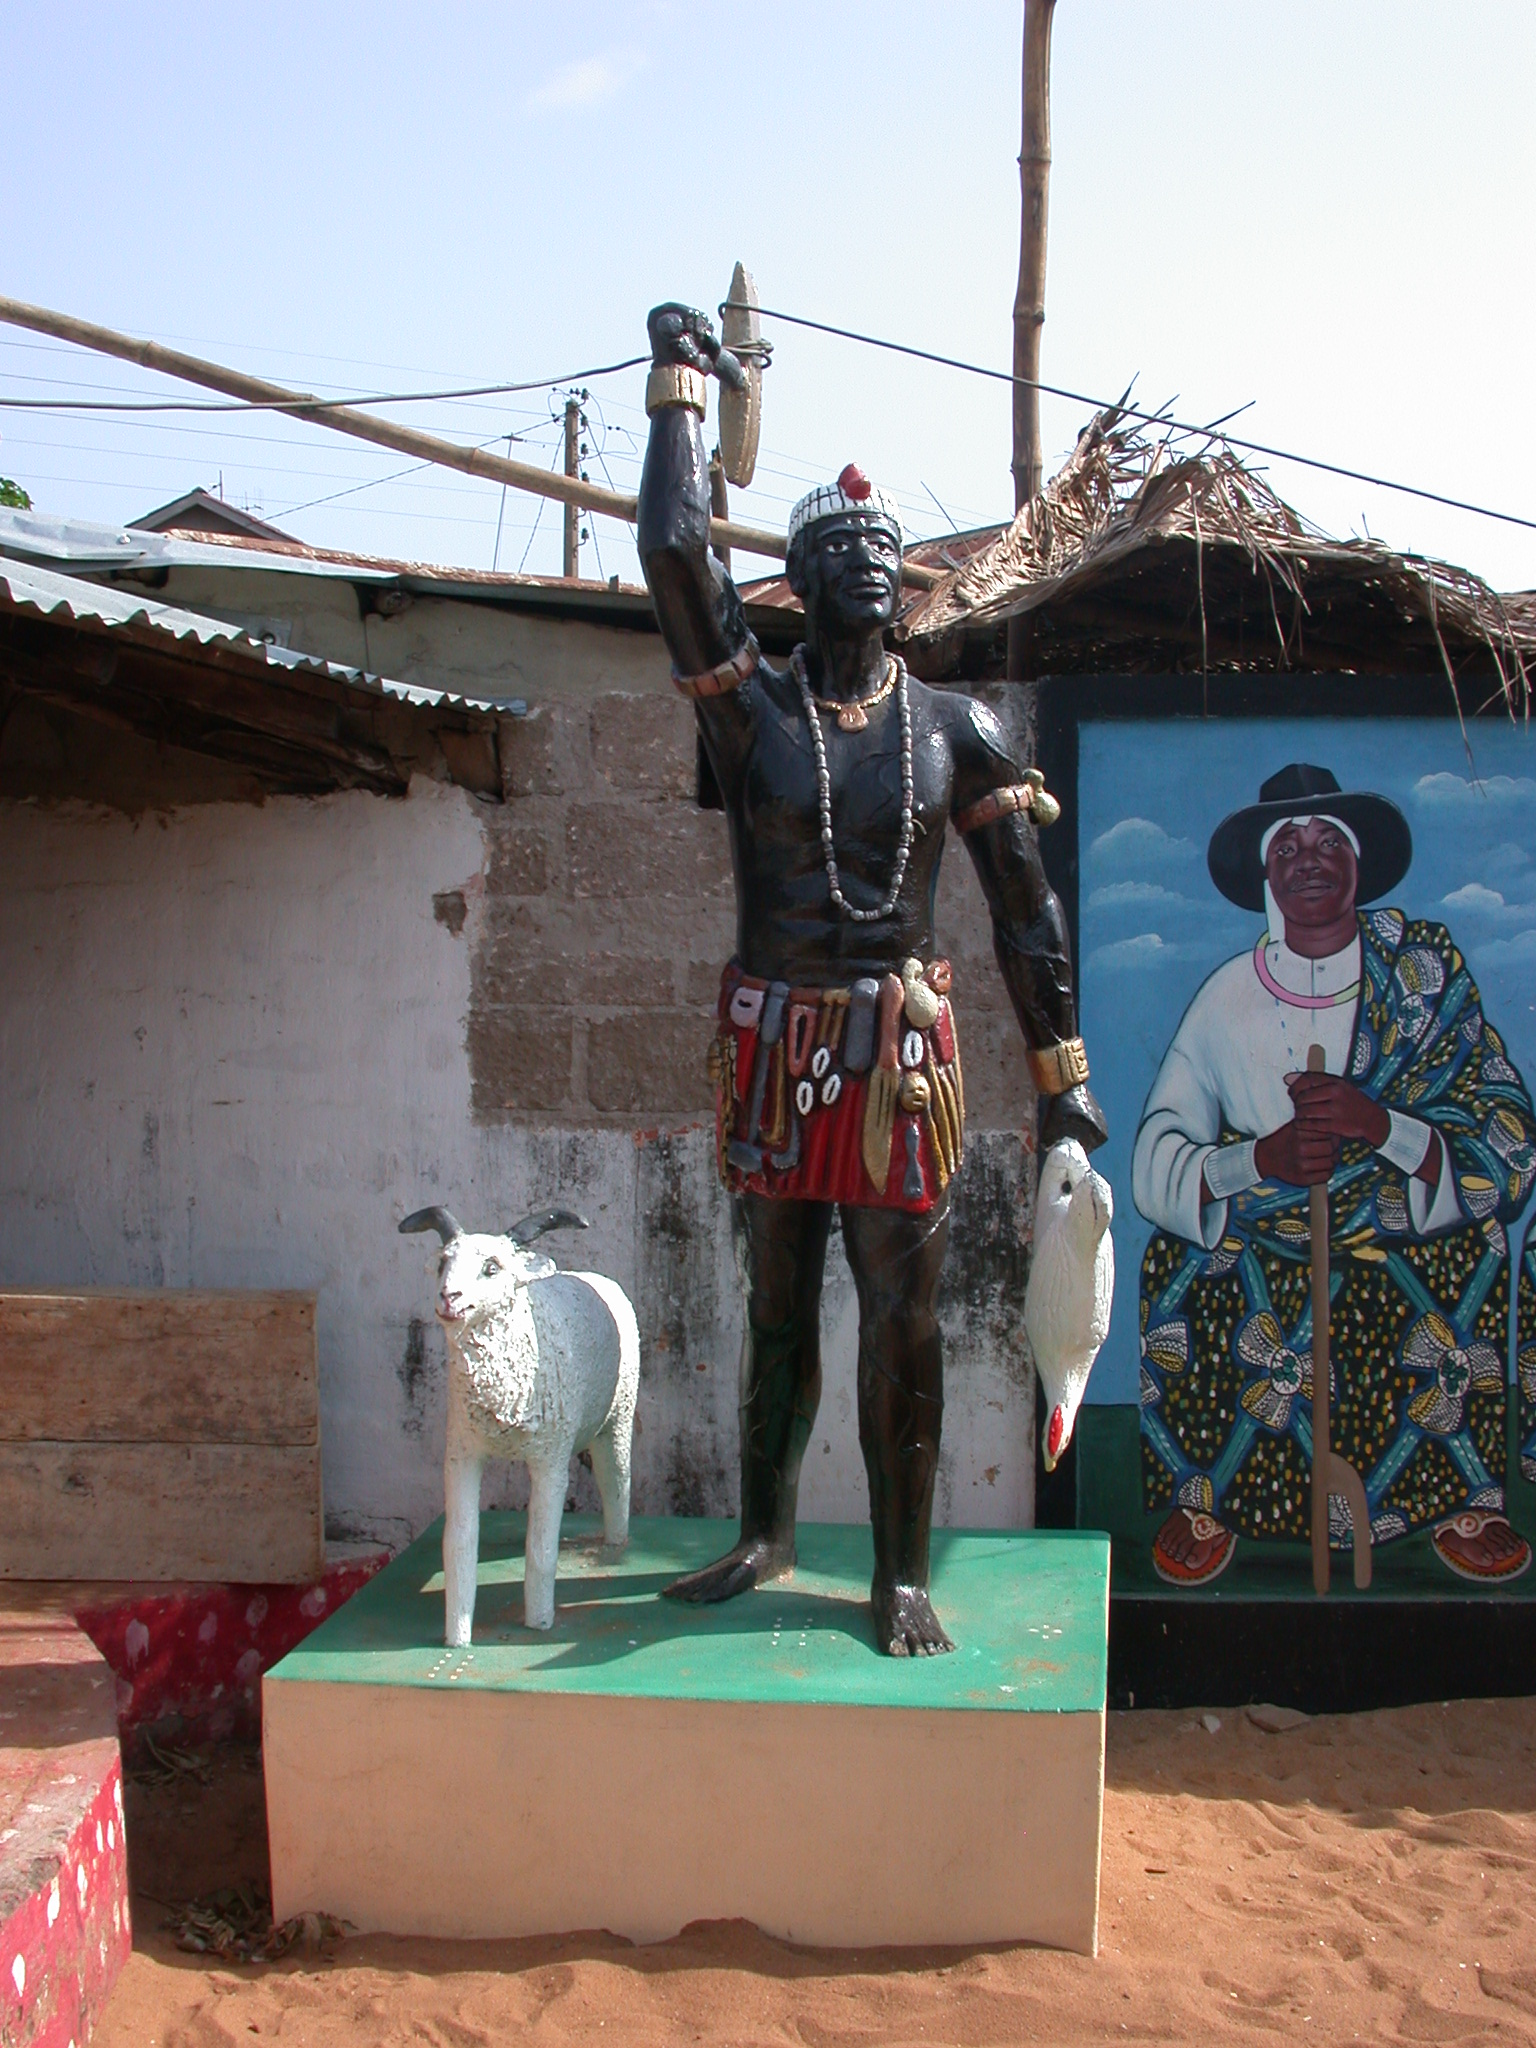 Statue With Ram and Chicken Sacrifice Next to Daagbo Hounon Portrait, Daagbo Hounon Dodo Palace, Ouidah, Benin